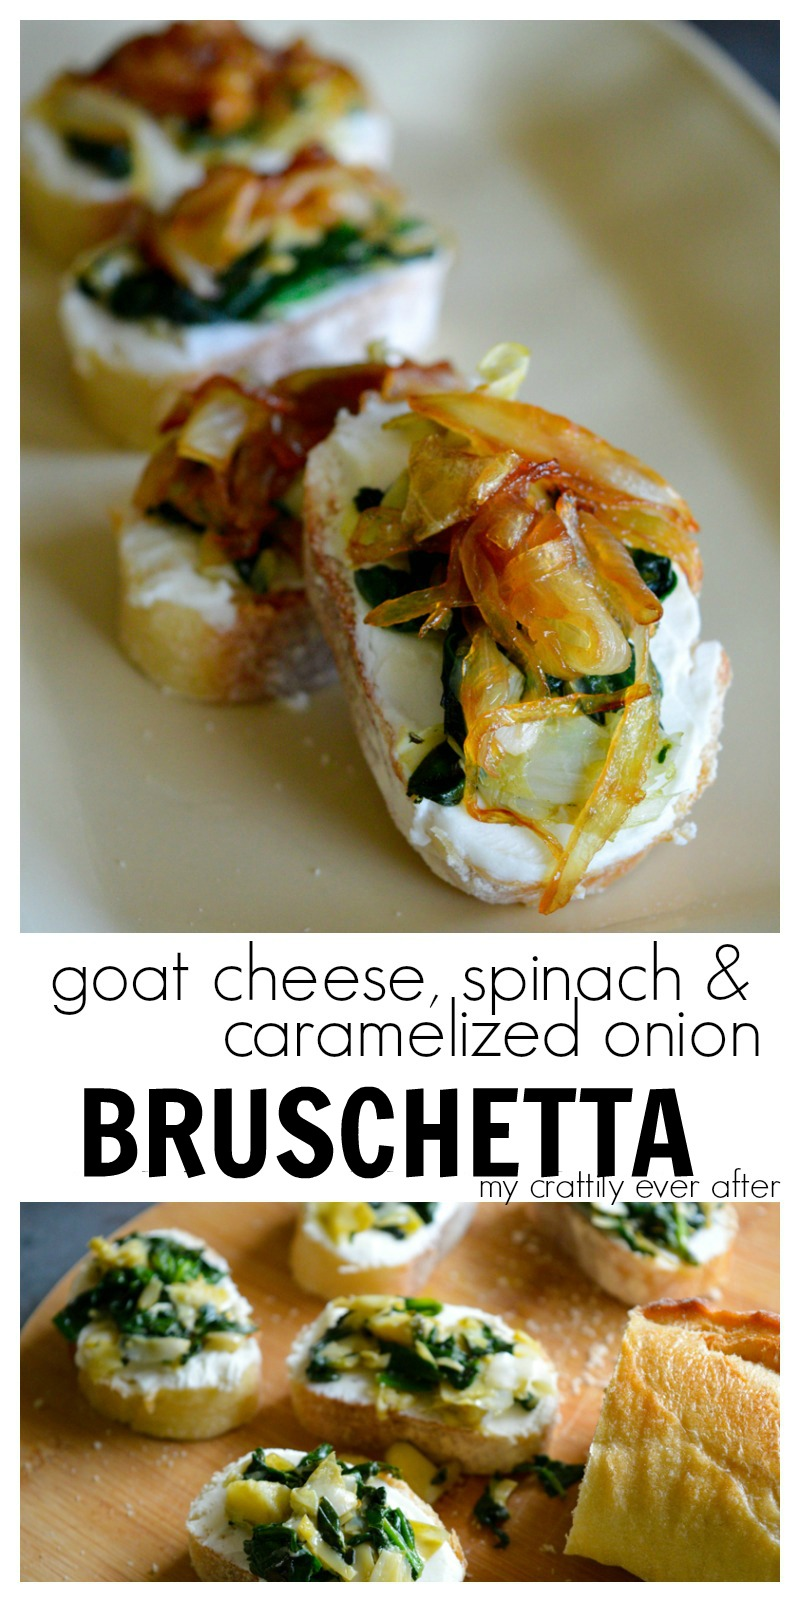 goat-cheese-spinach-and-caramelized-onion-bruschetta-fall-appetizer